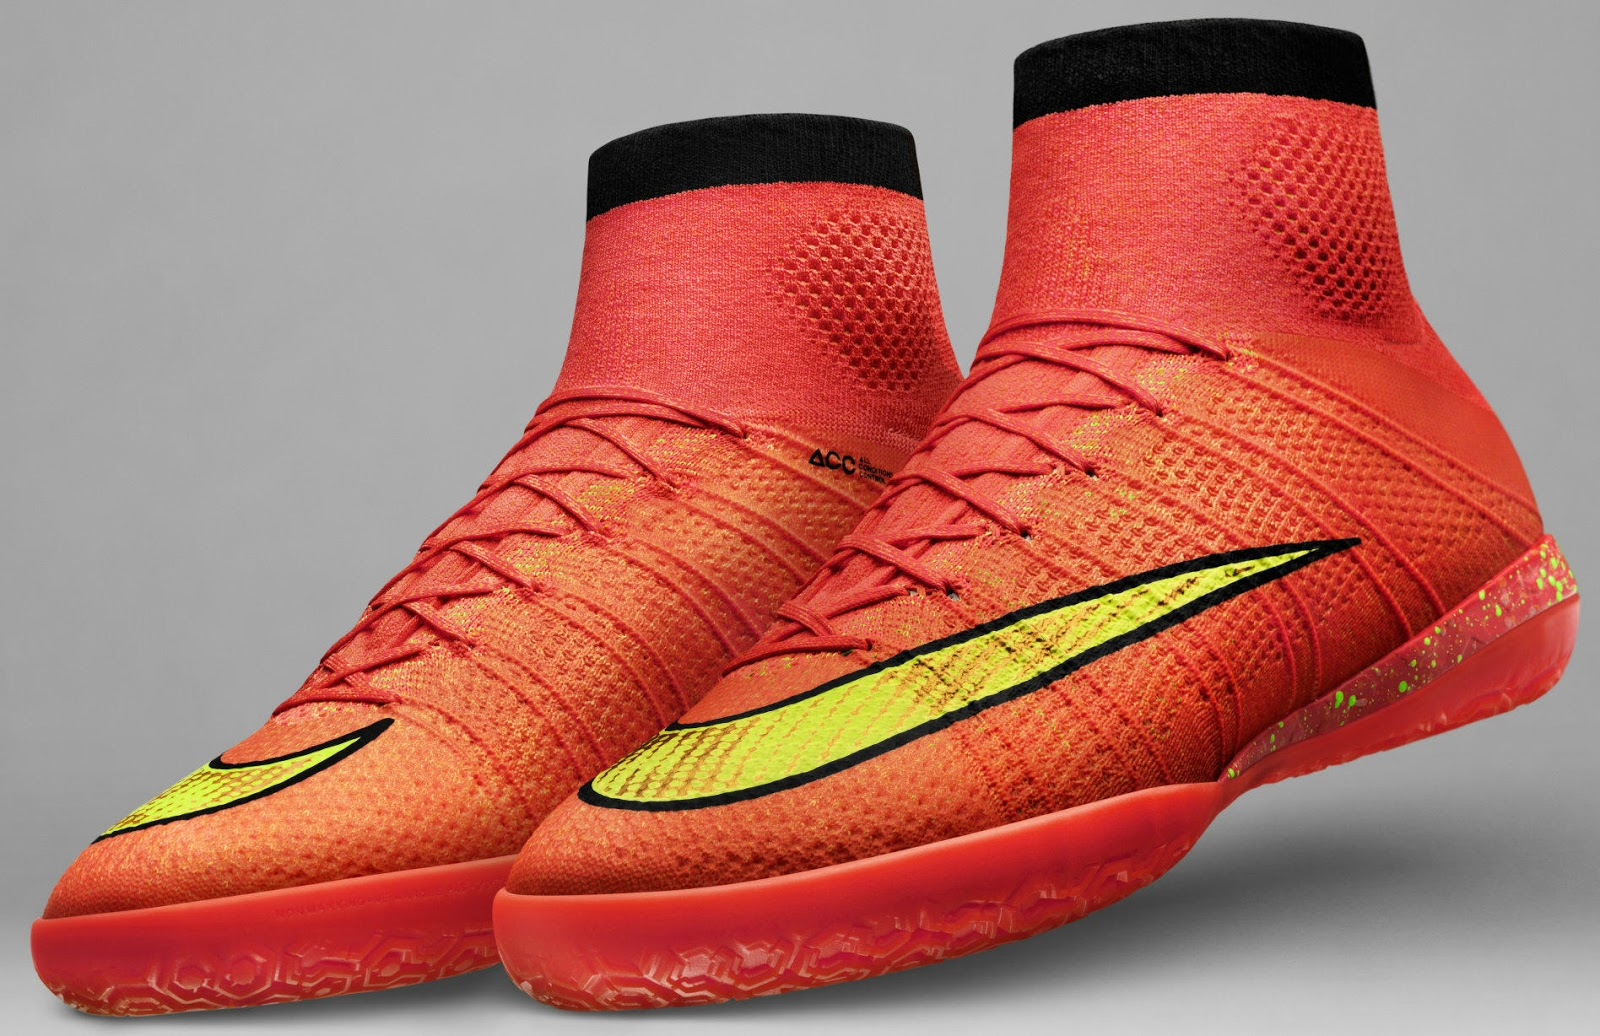 new nike elastico superfly 2014 boot launched footy. Black Bedroom Furniture Sets. Home Design Ideas